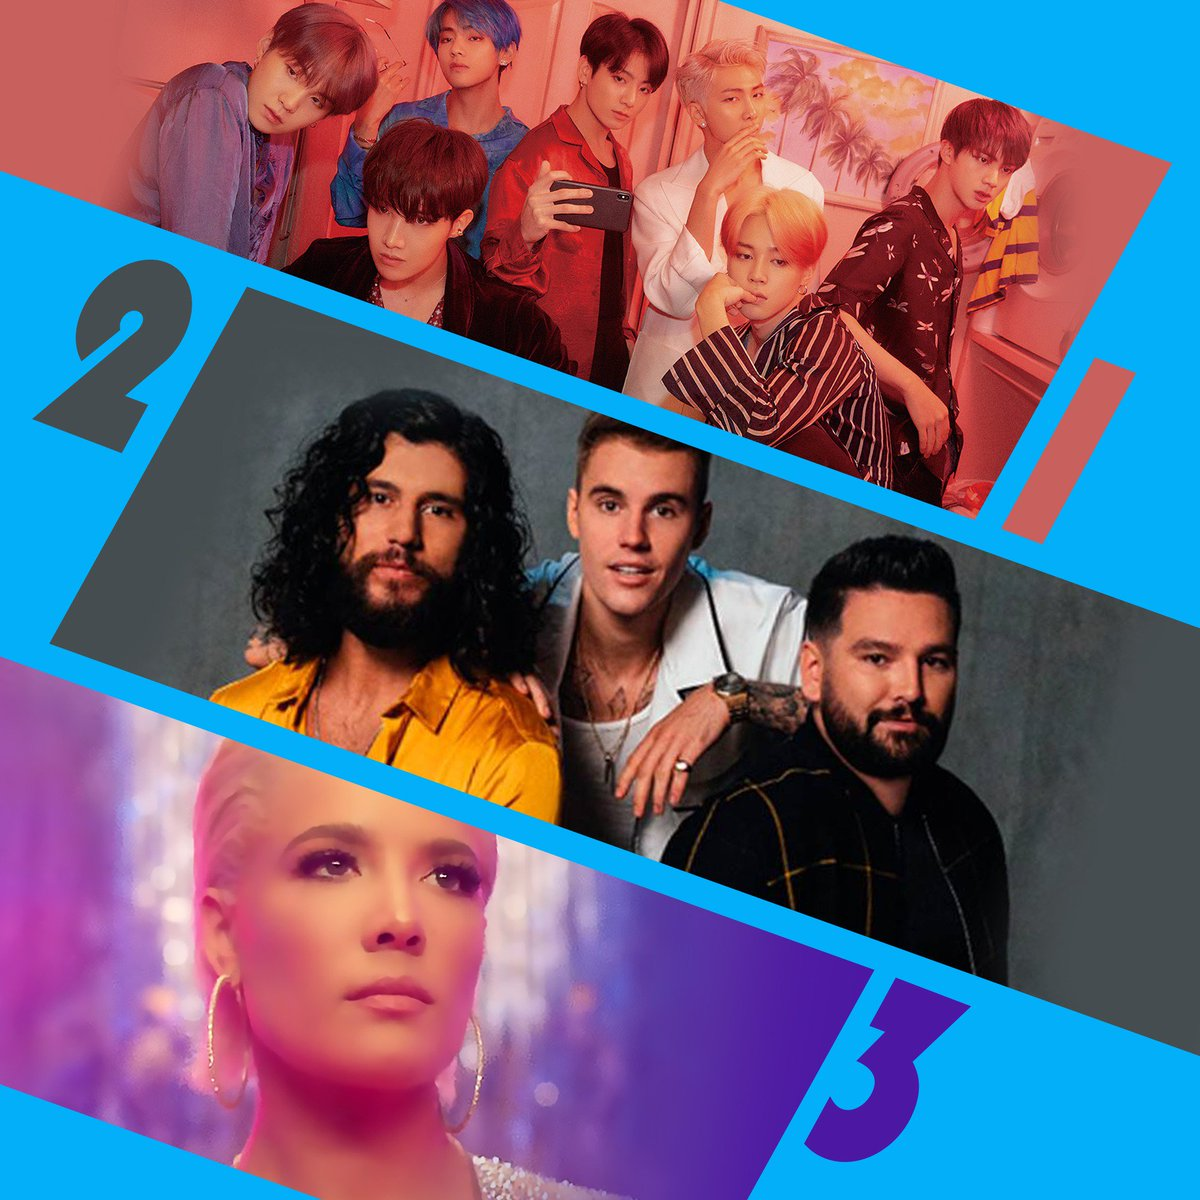 We could listen to Friday's #RDTop3 for 10,000 hours! 1. @bts_bighit #MakeItRight (f. @lauvsongs) 2. @DanAndShay & @JustinBieber #10000Hours 3. @Halsey #Graveyard<br>http://pic.twitter.com/XNFAciqzqU